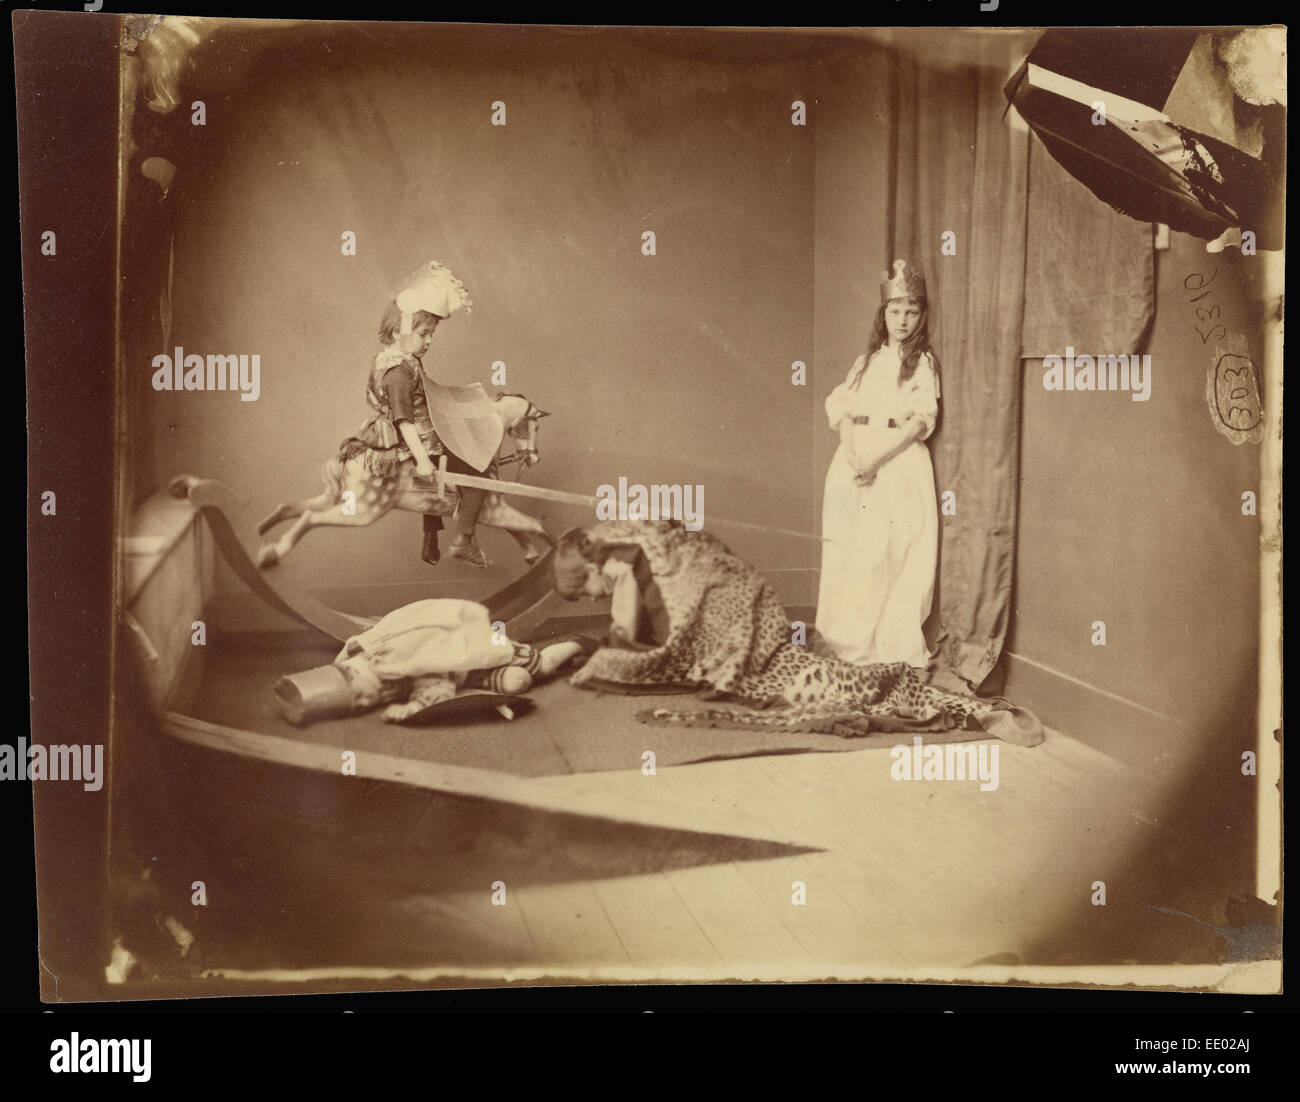 Saint George and the Dragon; Lewis Carroll, British, 1832 - 1898; June 26, 1875; Albumen silver print - Stock Image